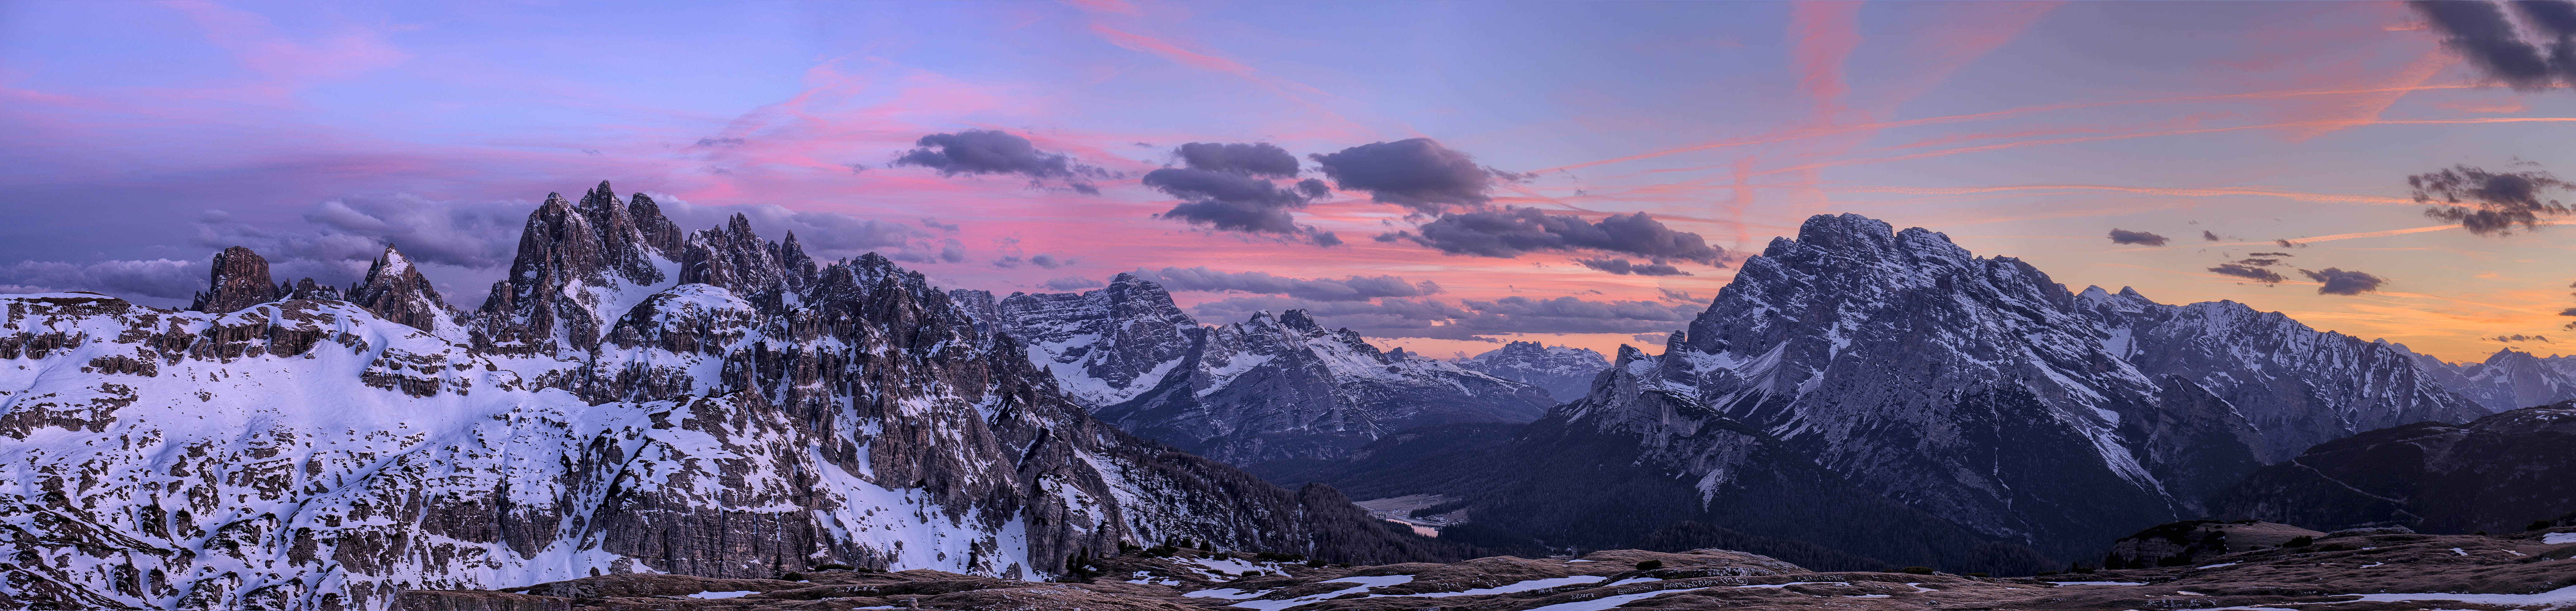 A magnificent landscape with tall craggy mountains under a purple-hued sky in the Dolomites